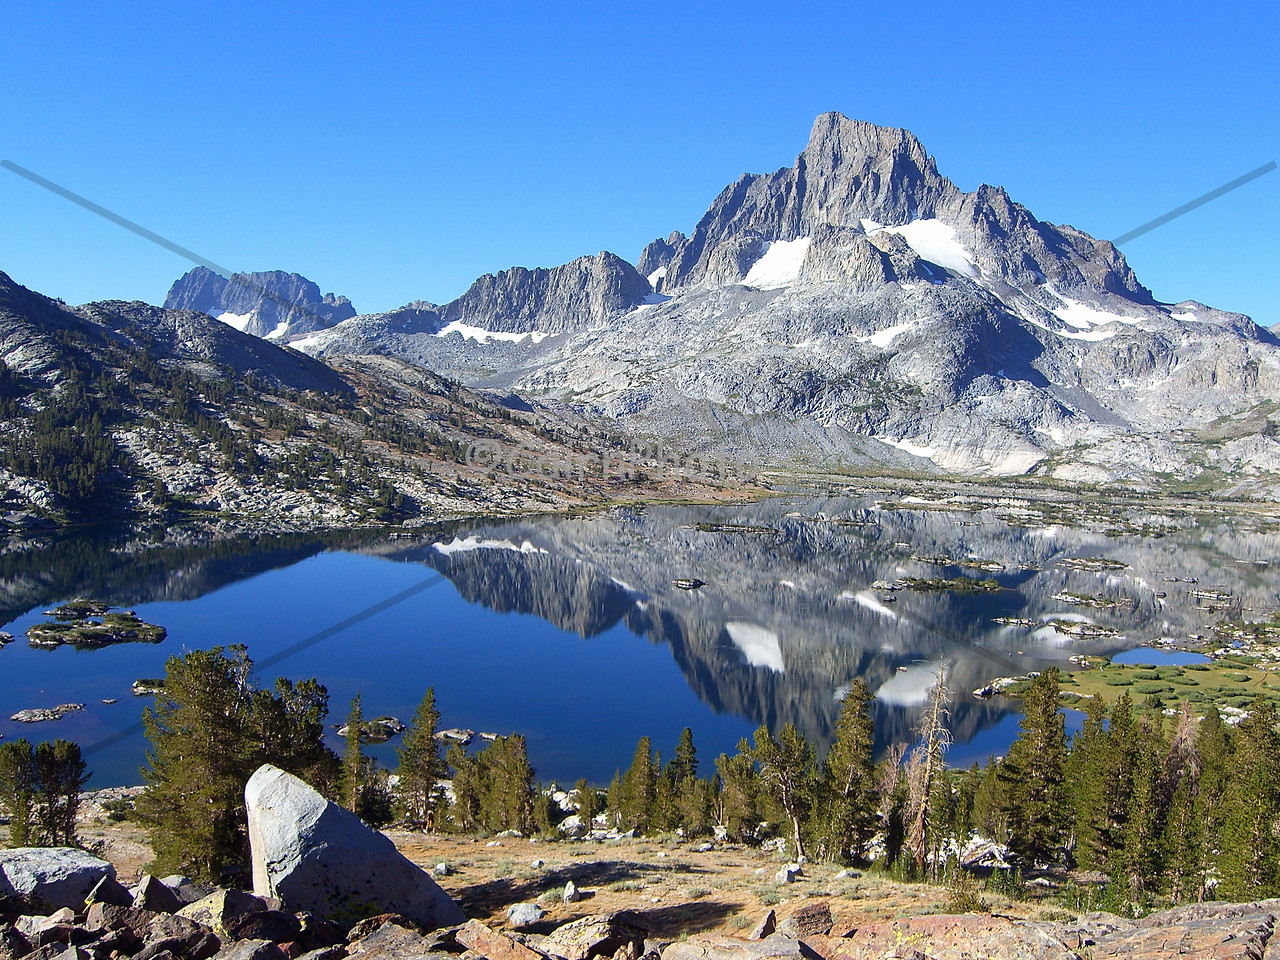 This is beautiful1000 Island lake (near Mammoth Mountain).  Banner Peak is proudly reflected in the water.